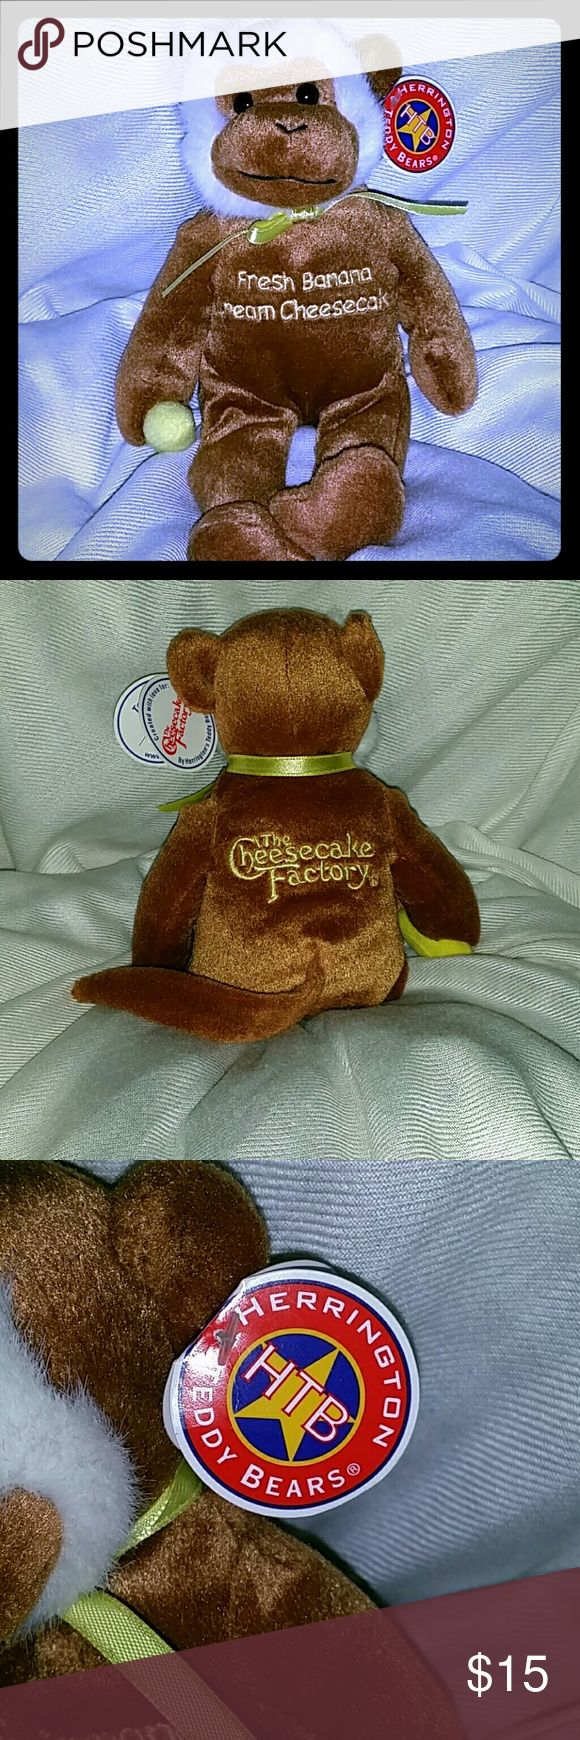 Collector beanie baby Cute Fresh Banana Cream Cheesecake beanie monkey from The Cheesecake Factory. Kept stored. Make me an offer. Paypal + fees only. Thank you for stopping by my closet. herrington Other